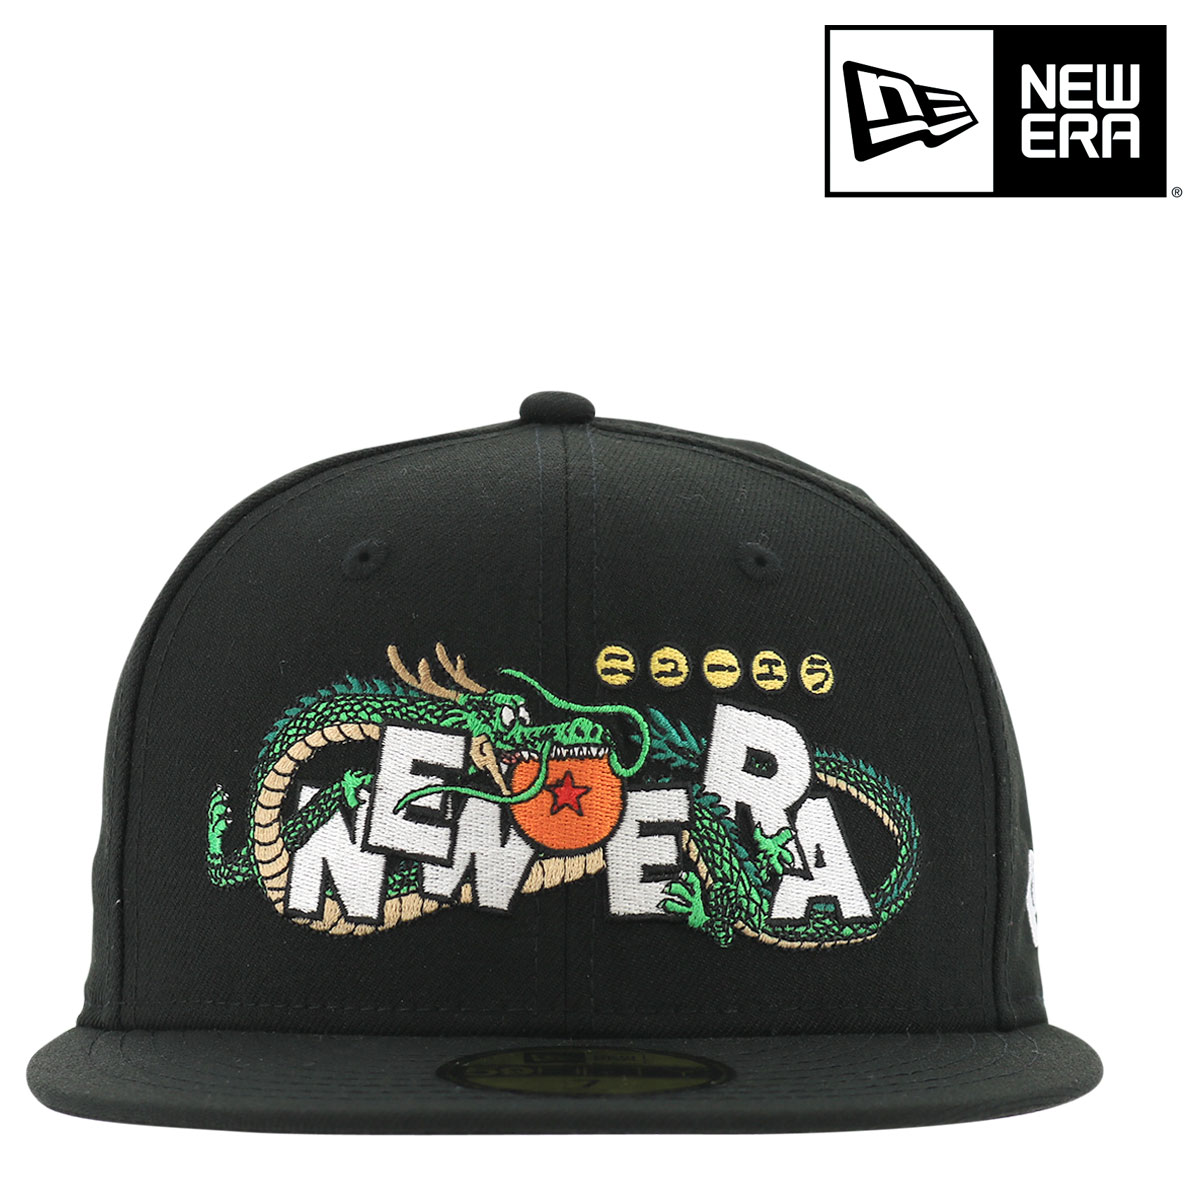 メンズ帽子, キャップ 56SALE 59FIFTY DRAGON BALL NEW ERA